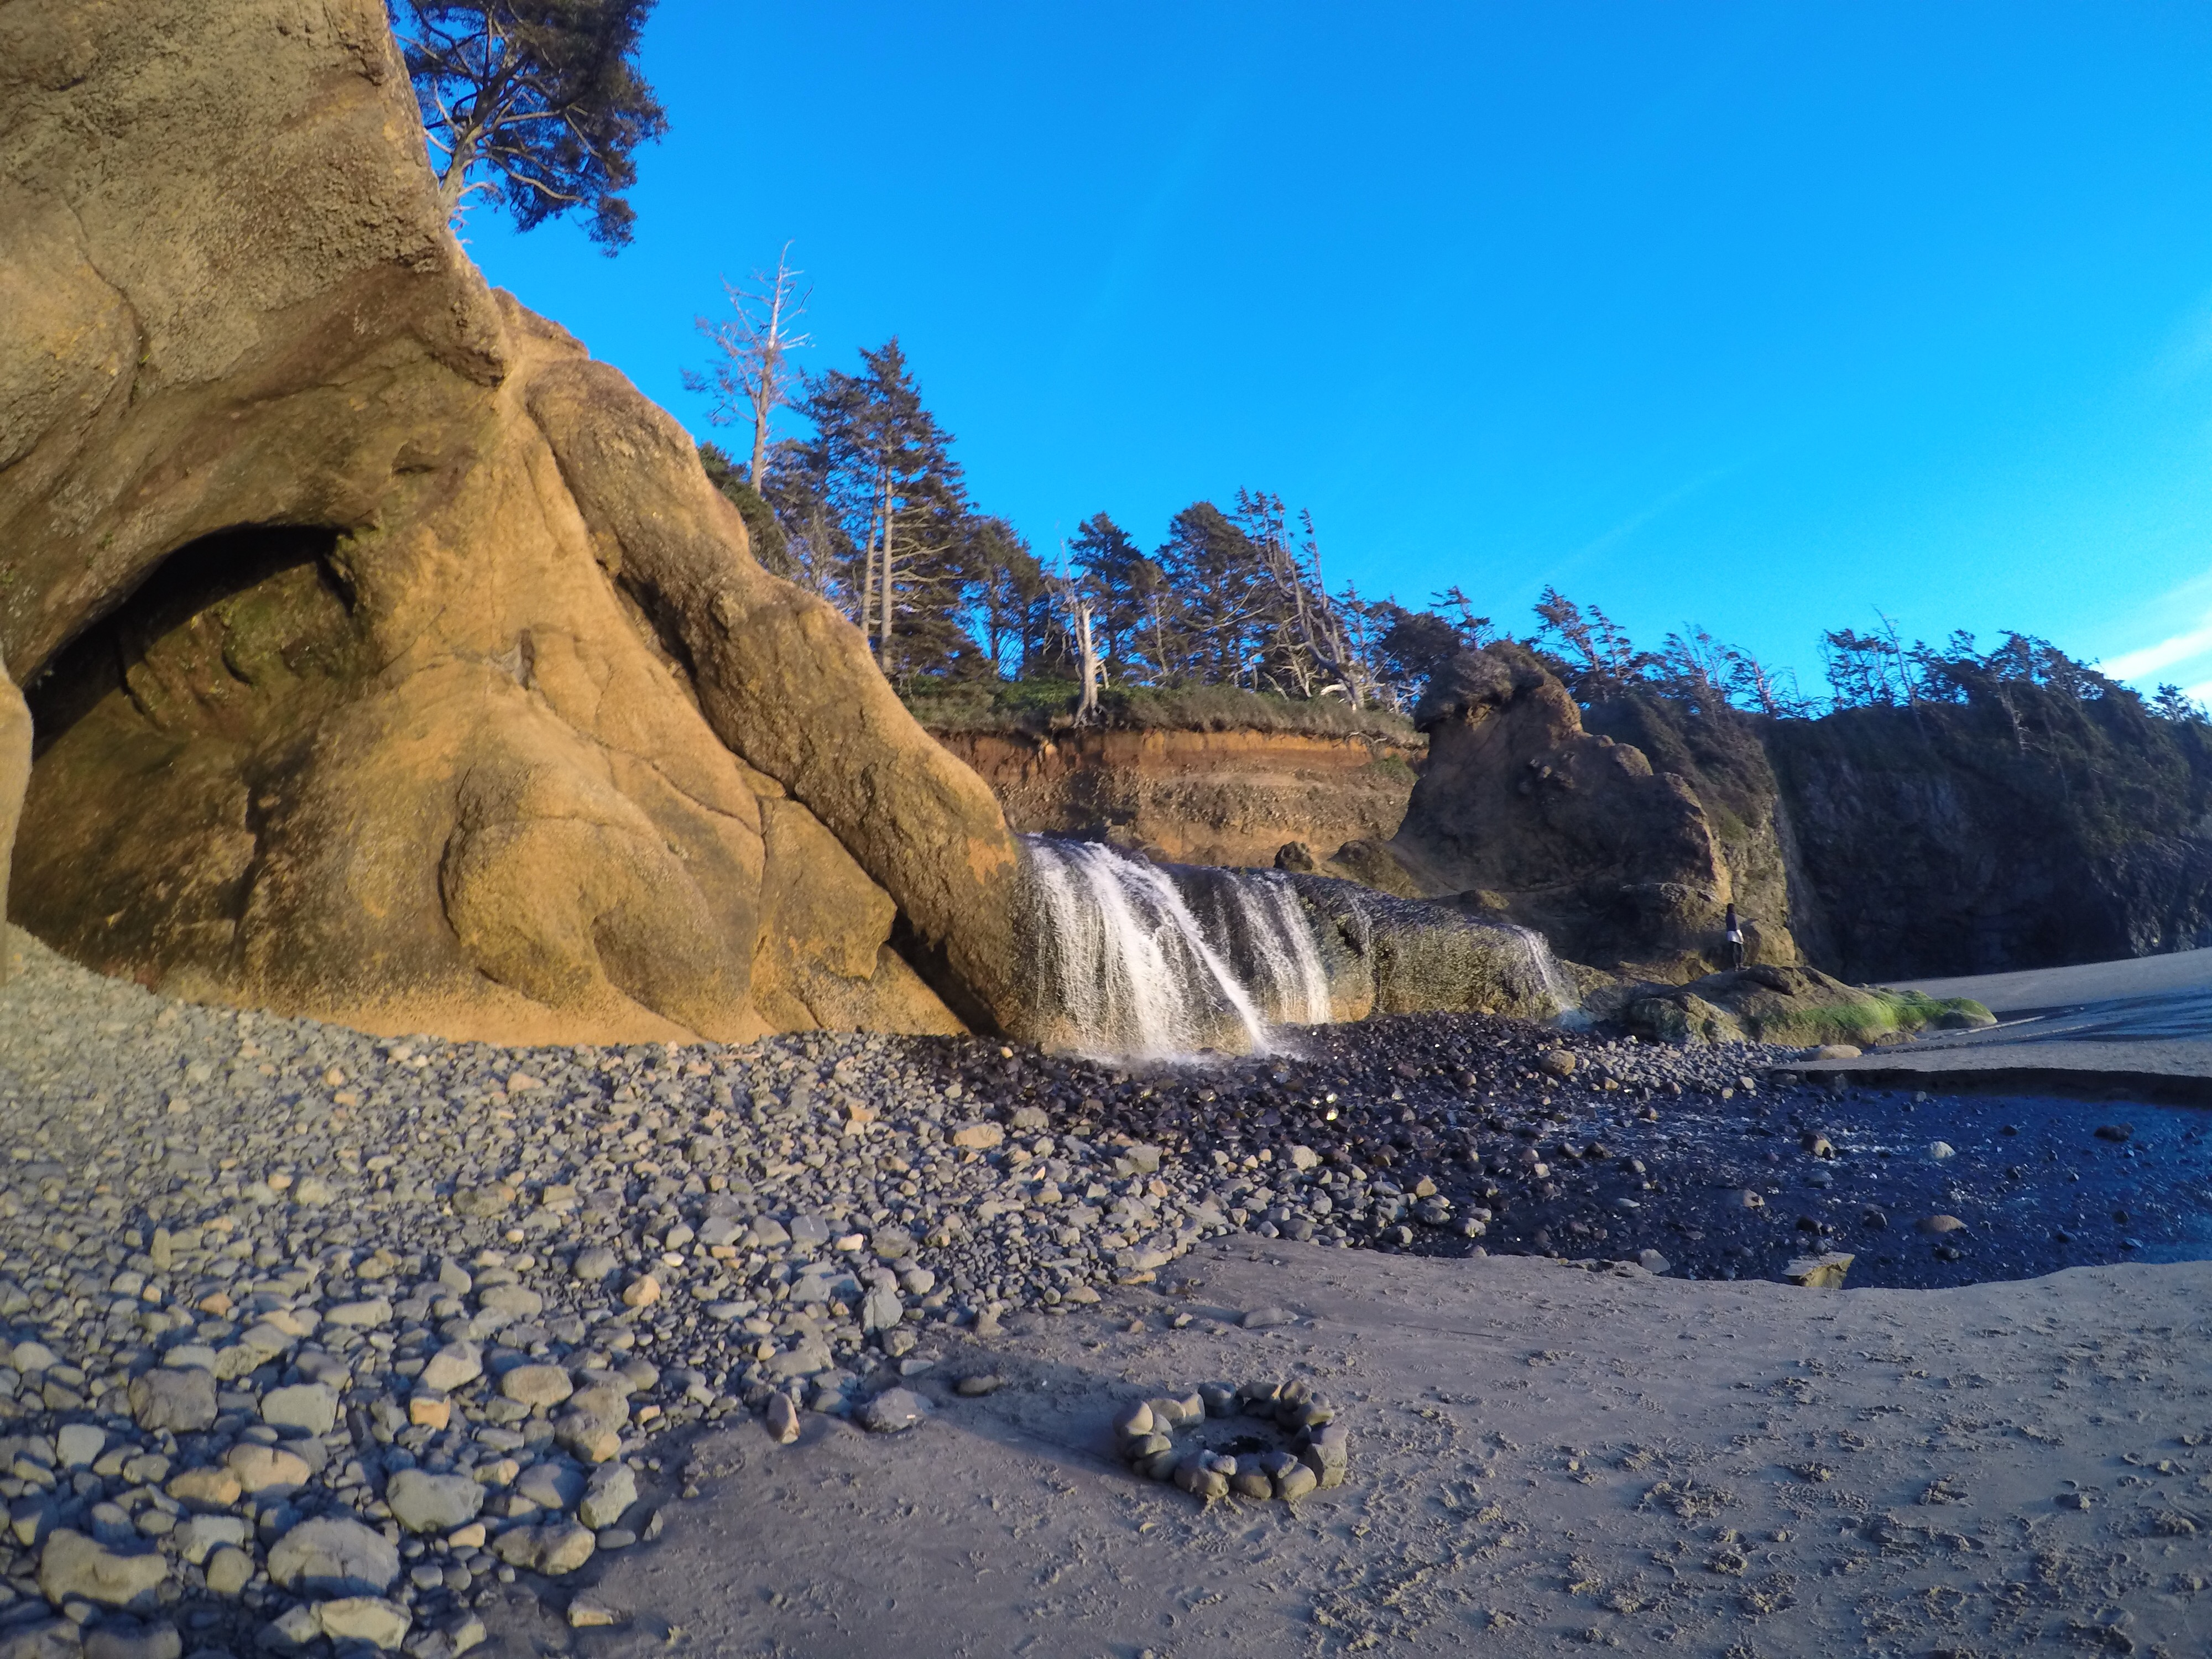 Chasing waterfalls wanderlust travel nurse make sure to check the tide charts before going to hug point the tide has to be low for you to walk to the falls or you can walk through hip deep nvjuhfo Image collections